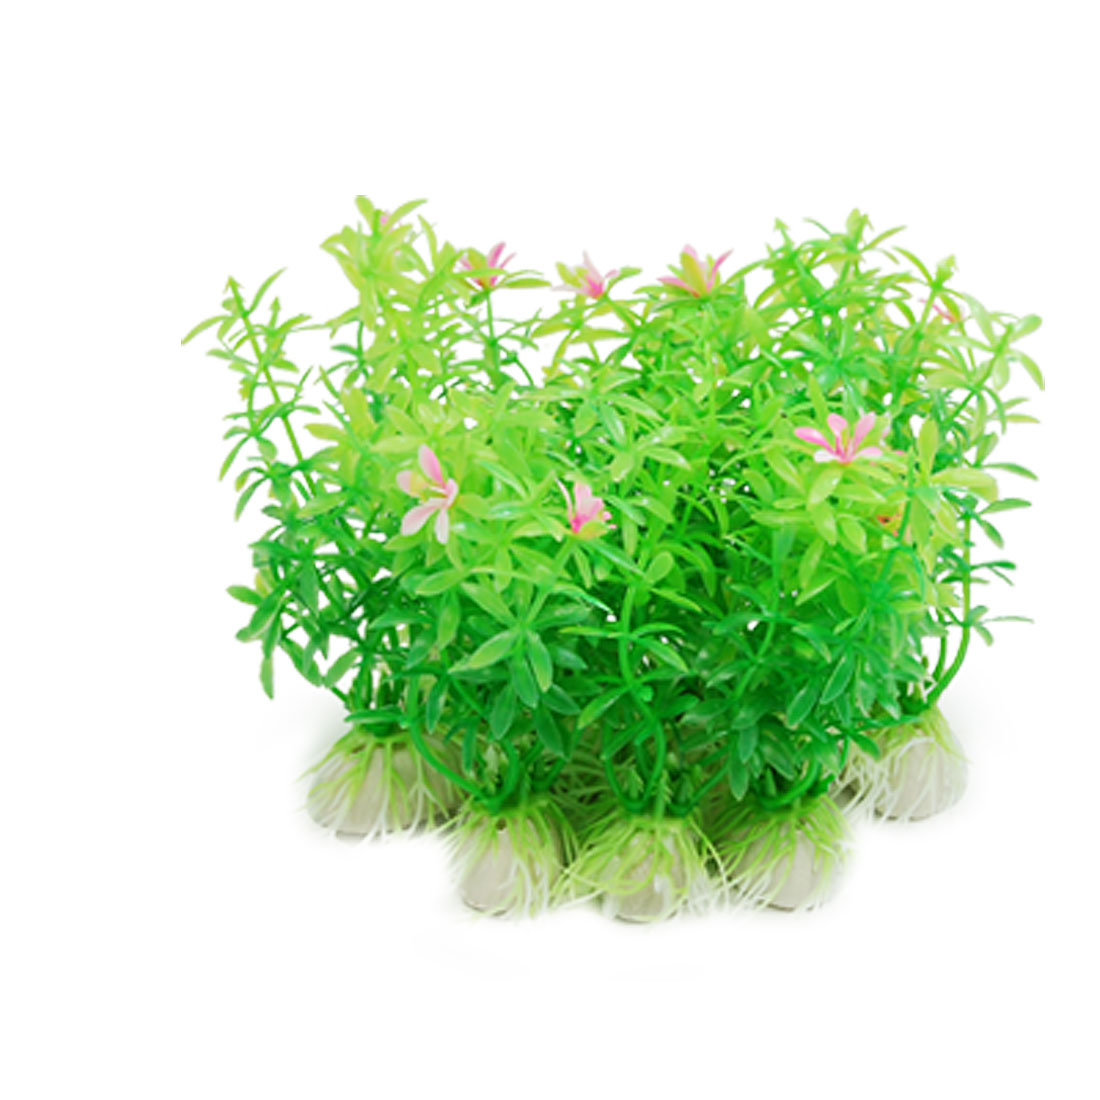 Green Plastic Plants Green with Flowers for Aquarium Fish Tank